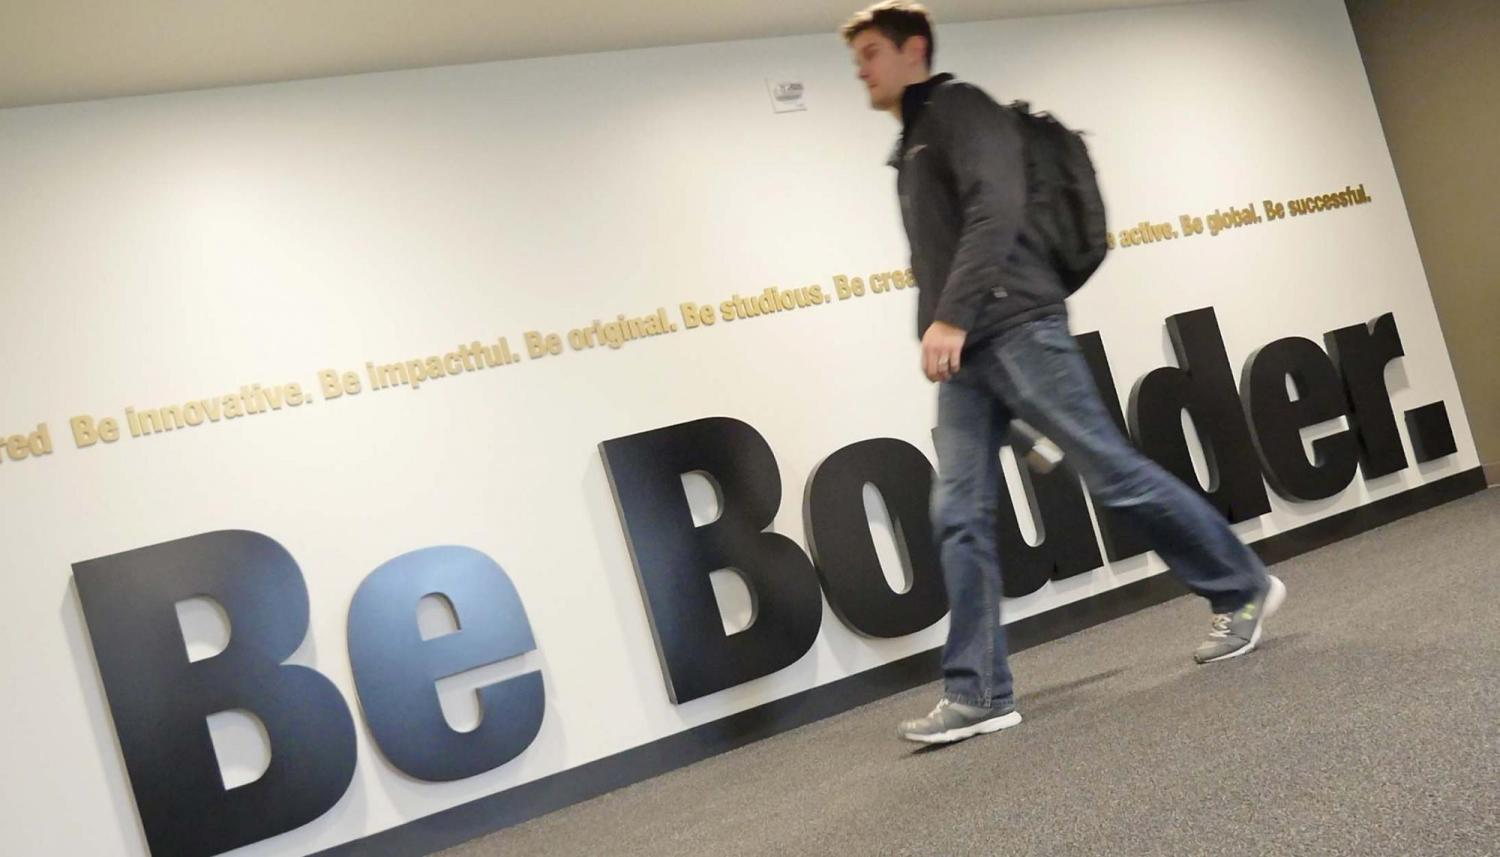 Be Boulder sign in the CASE building